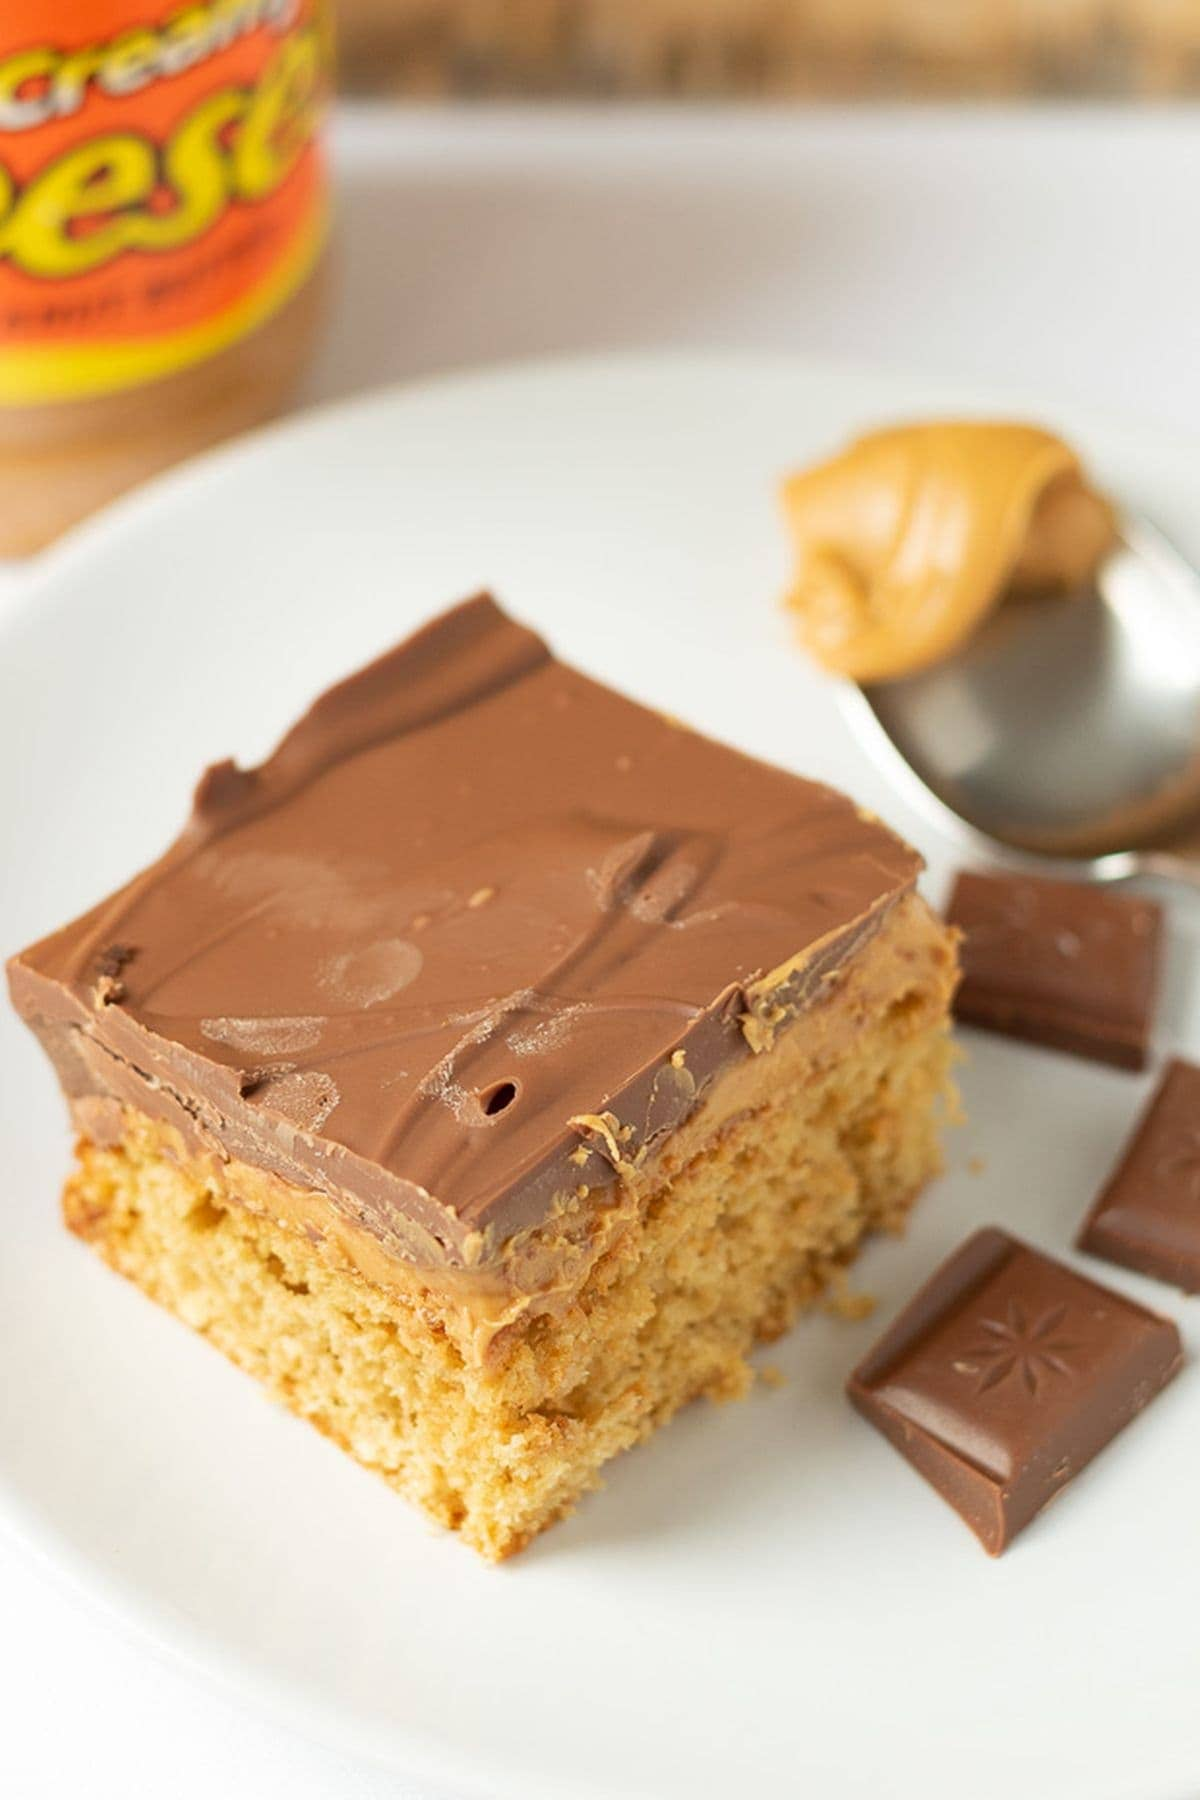 A square of chocolate peanut butter tray bake on a plate surrounded by squares of chocolate and a spoon with peanut butter on. Jar of peanut butter in the background.